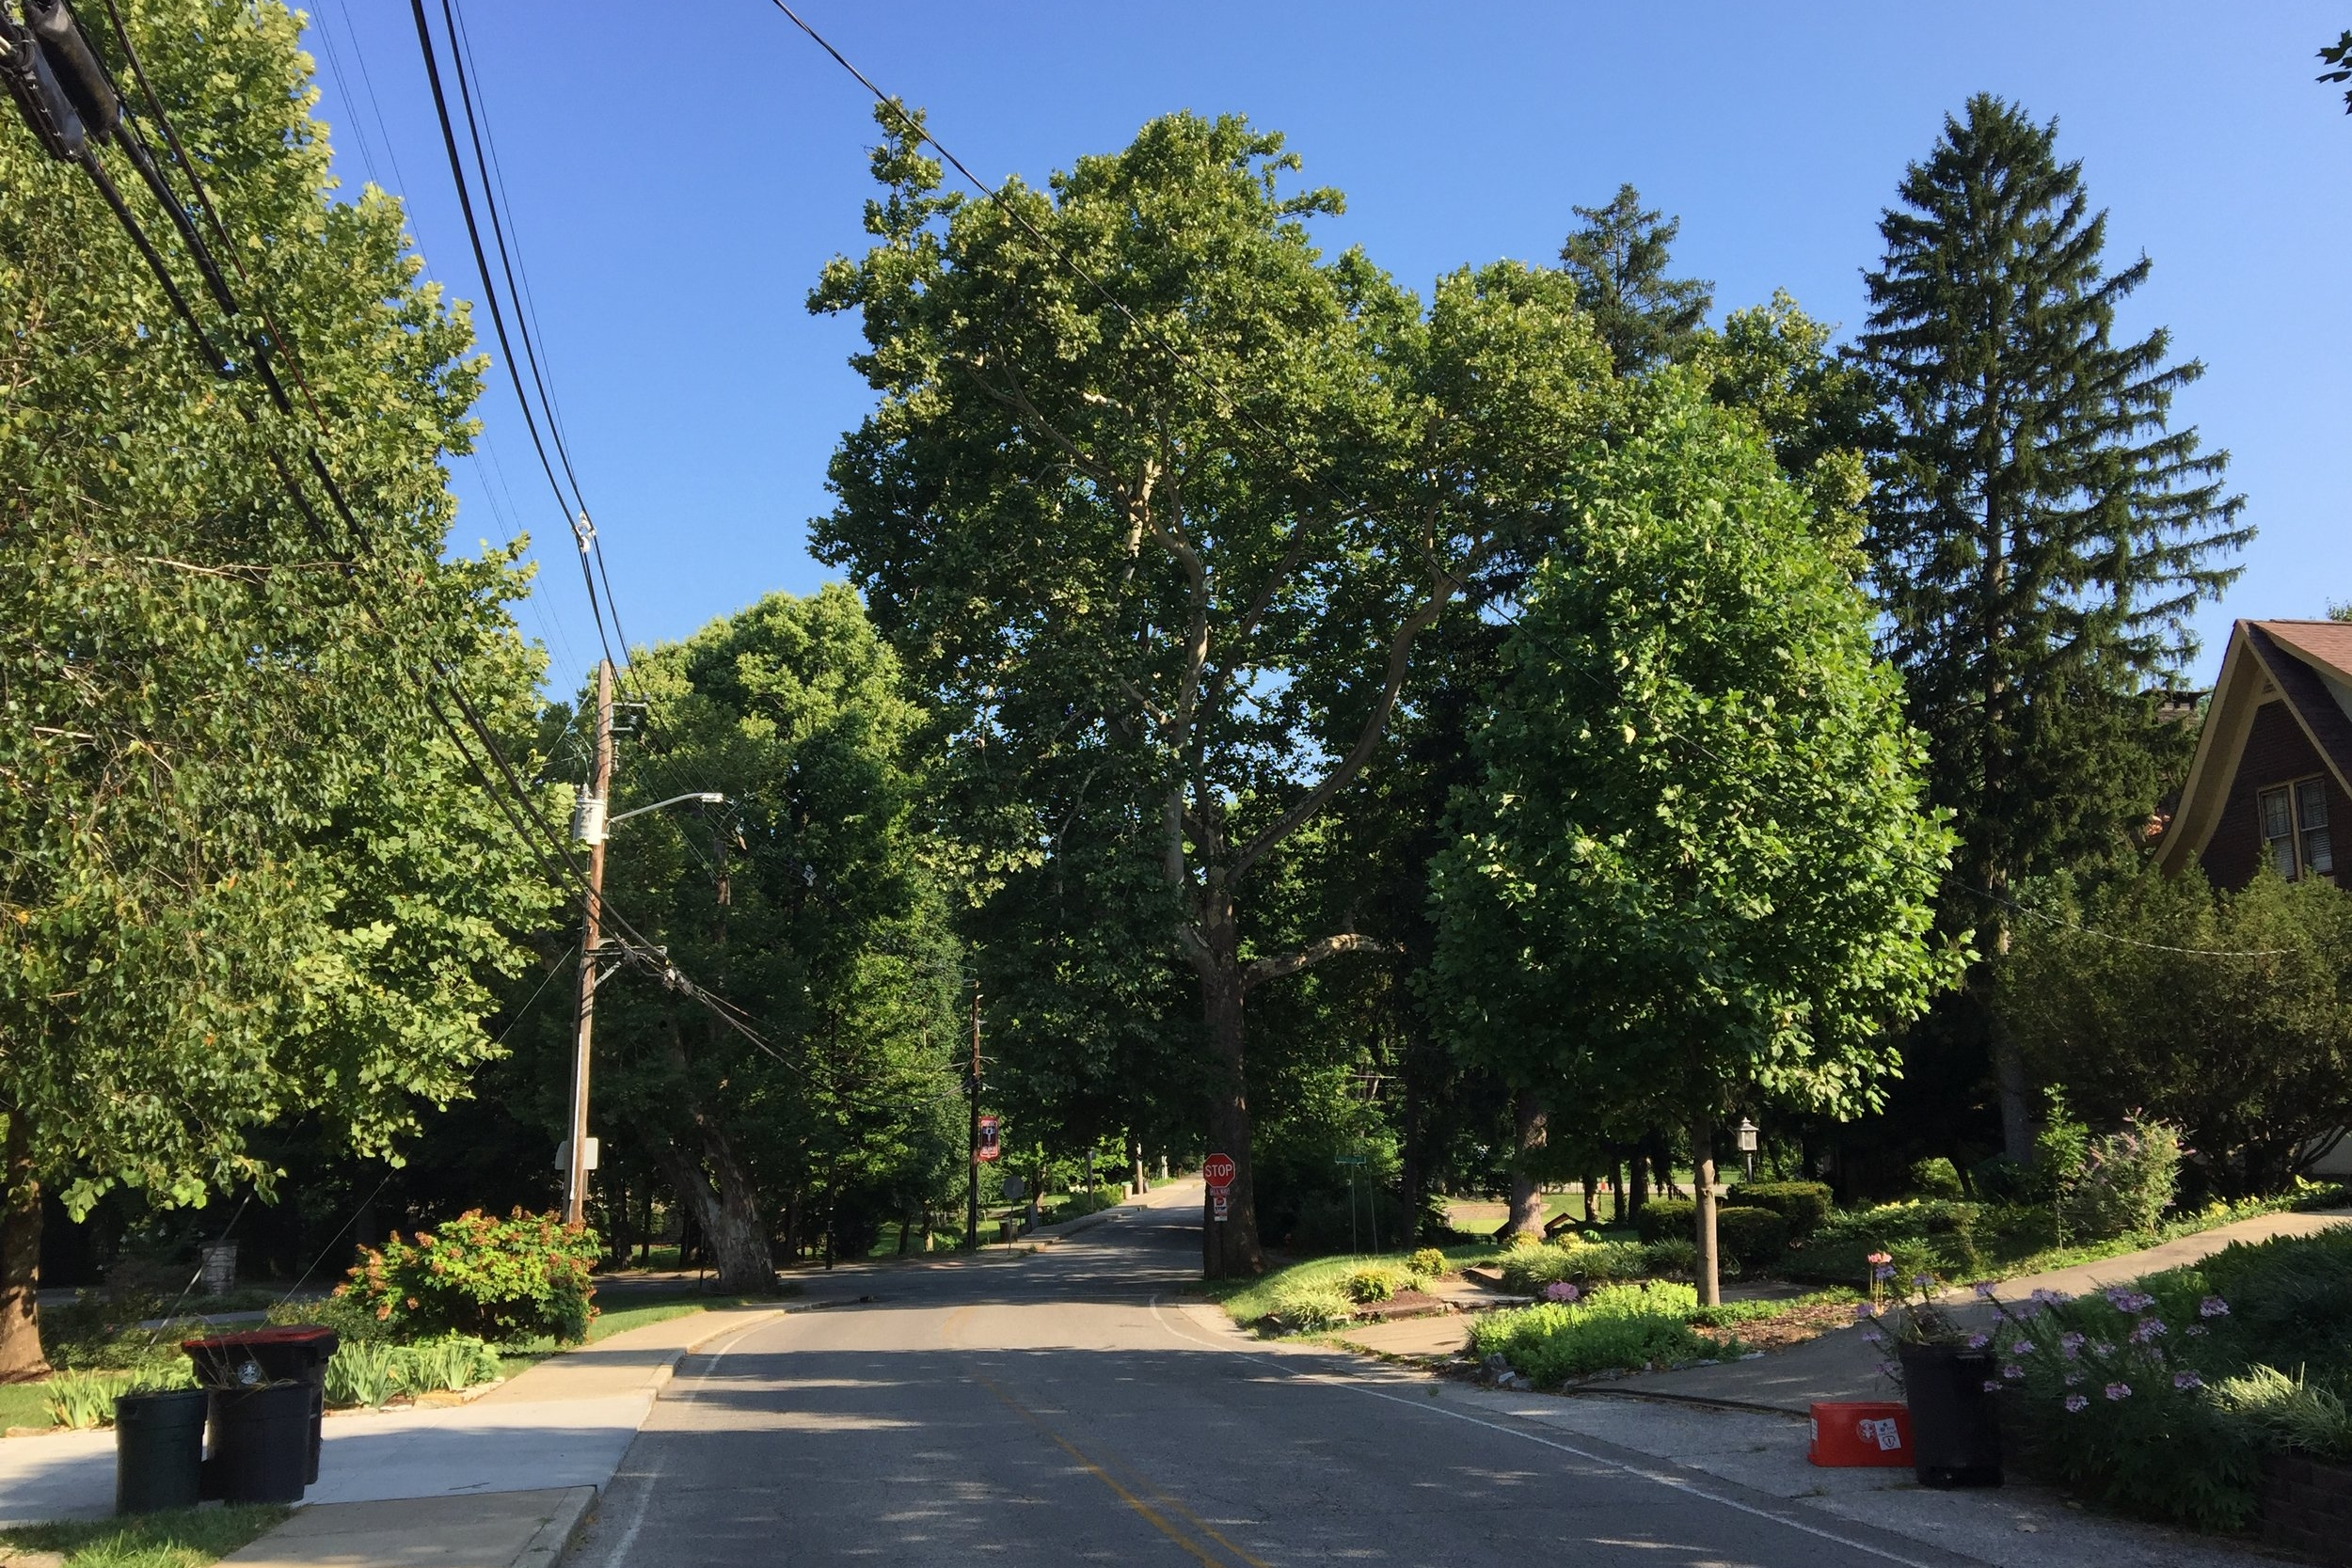 Does your yard need a tree? - The BNA Tree Canopy Program allows neighbors to request a tree(s) be planted in their front or side yard for a fraction of the cost.